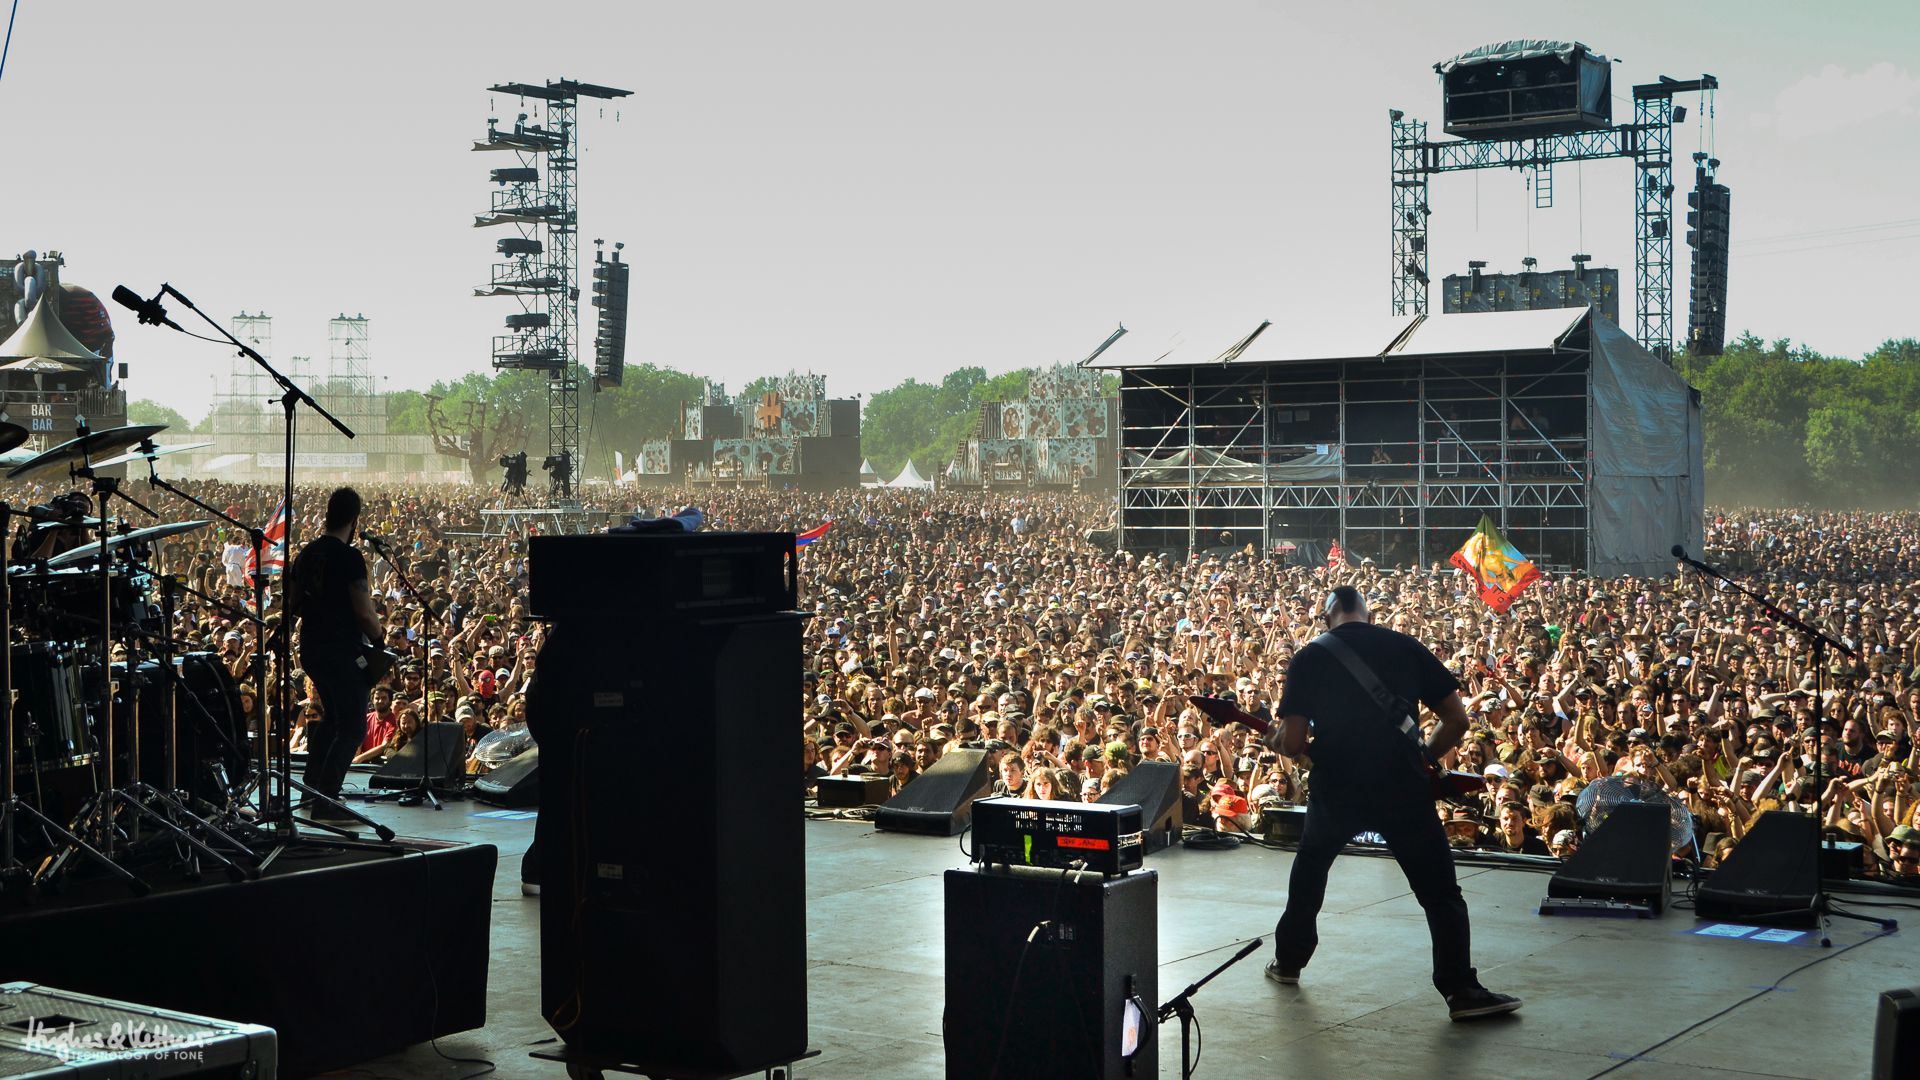 Jeff Waters and Dave Padden of Annihilator at Hellfest 2014 with the Hughes & Kettner GrandMeister.